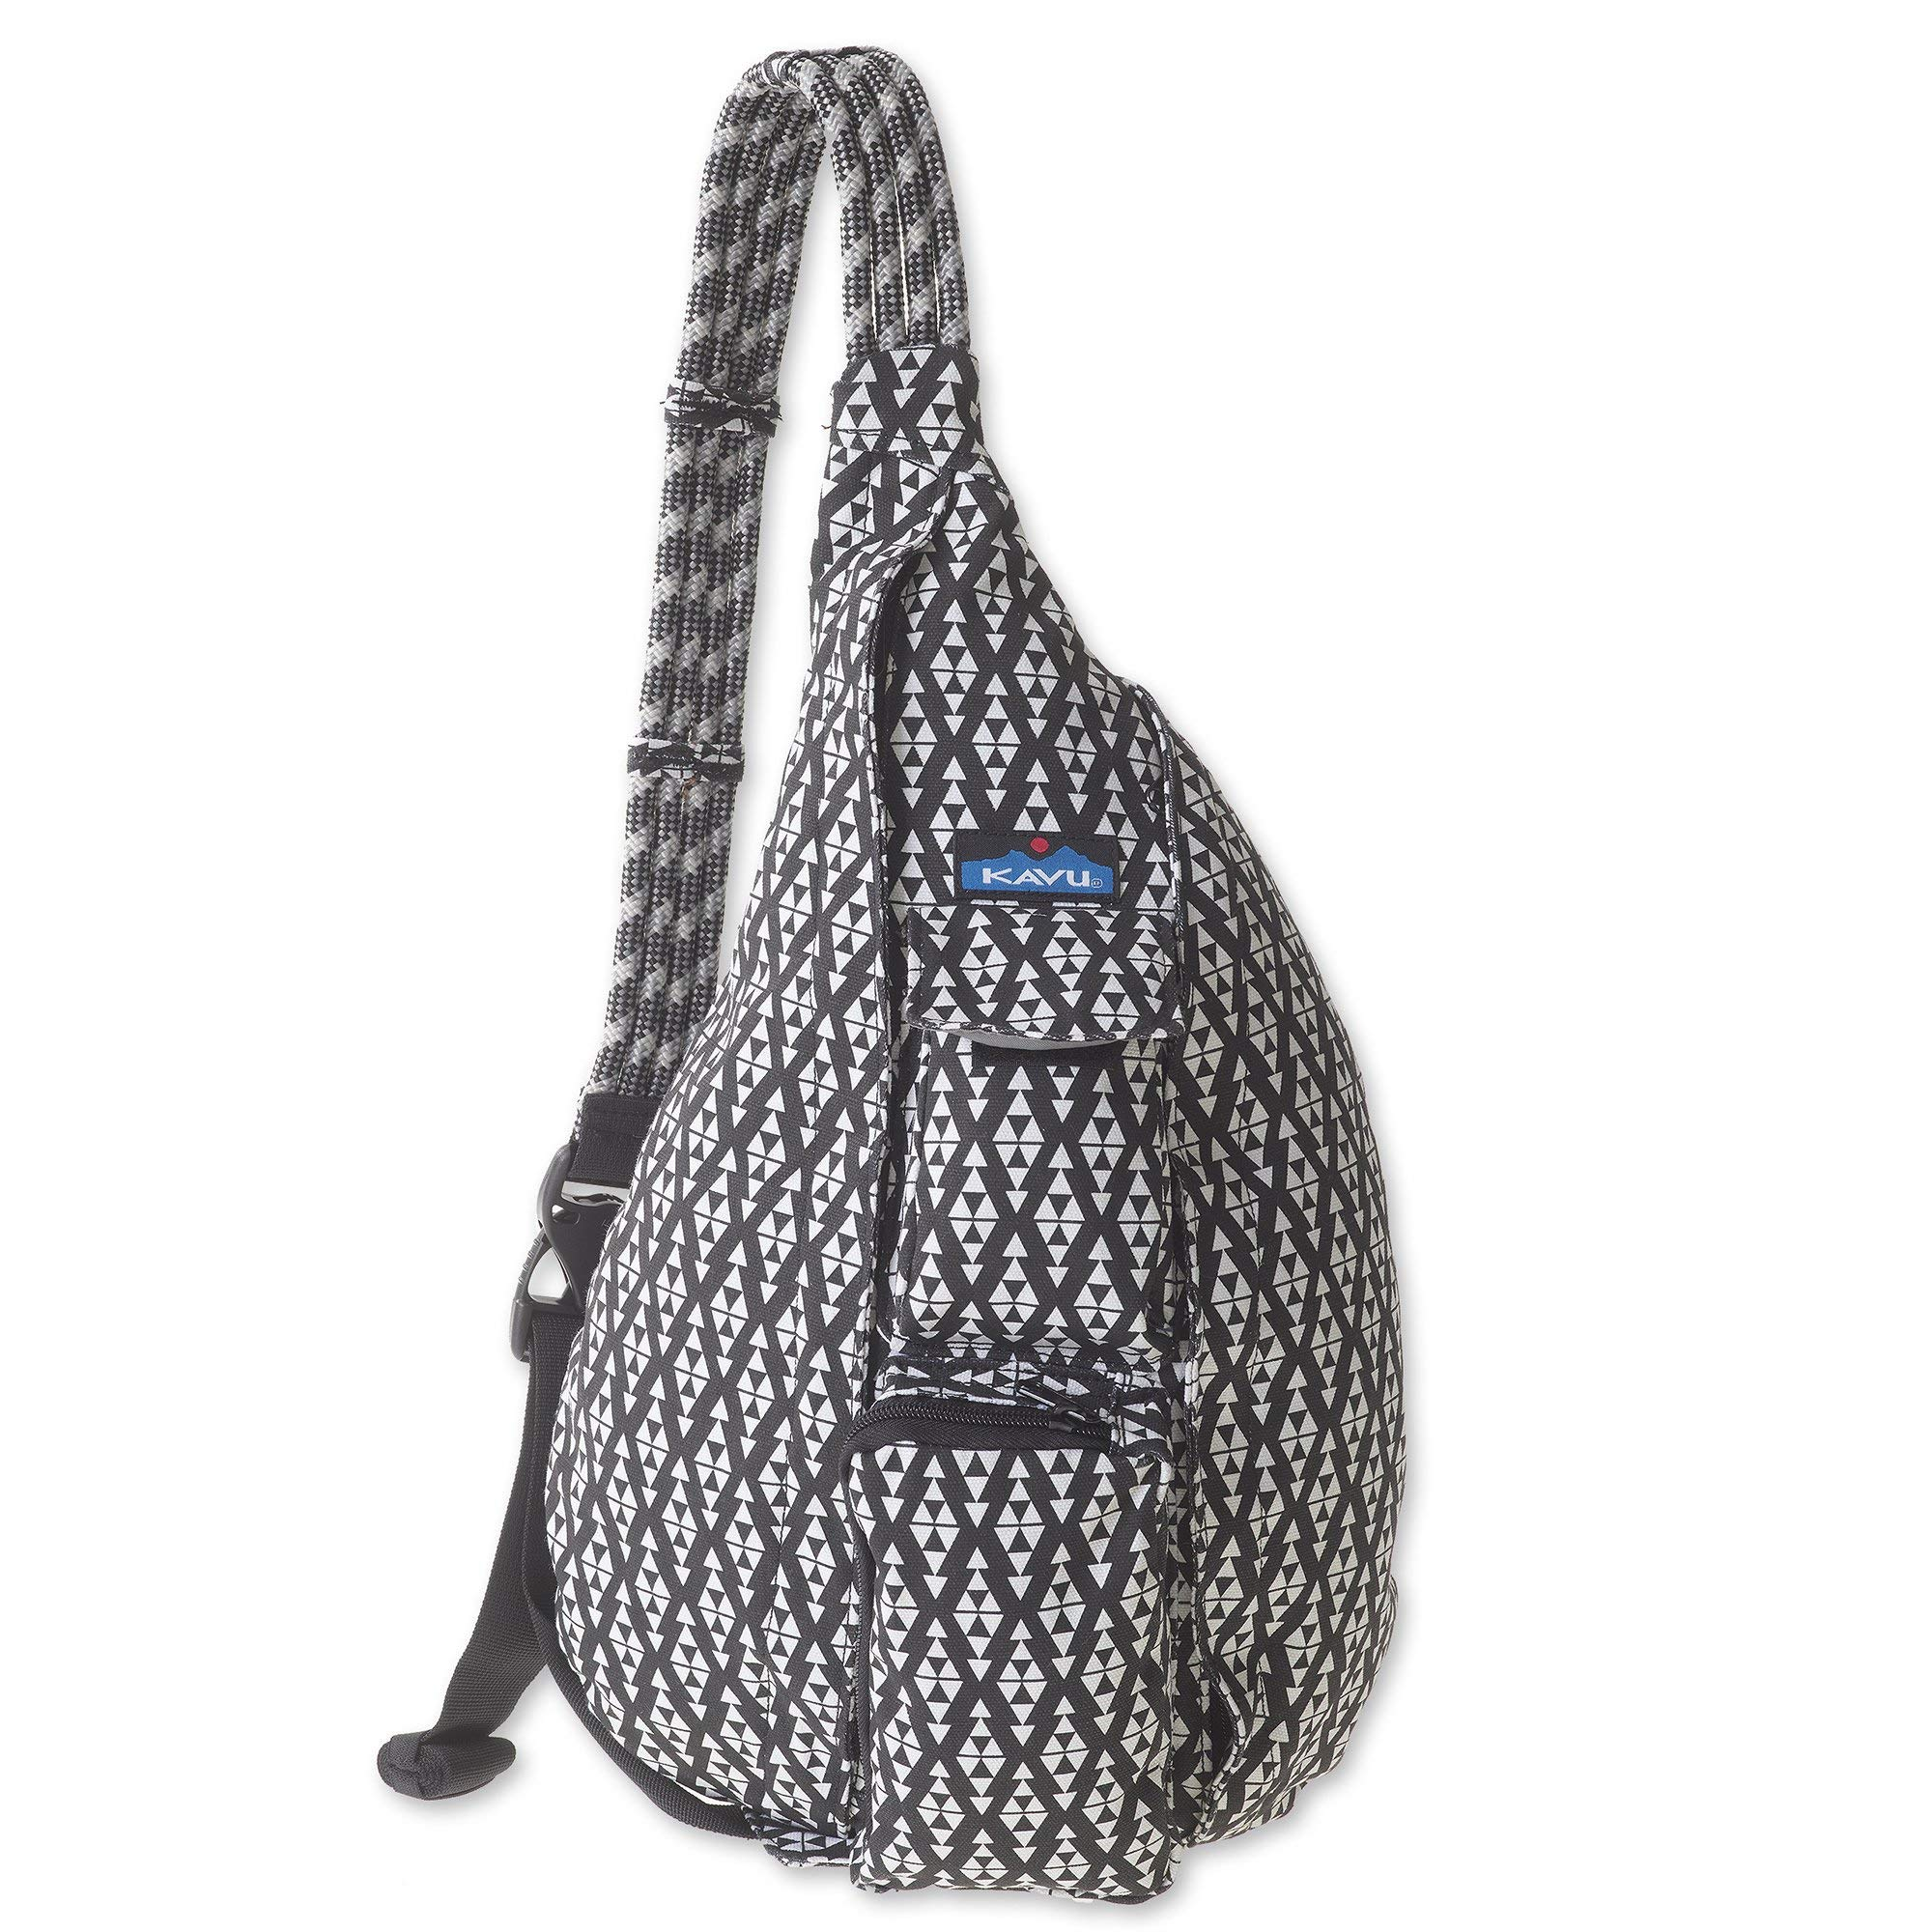 KAVU Rope Bag - Sling Pack for Hiking, Camping, and Commuting - BW Trio